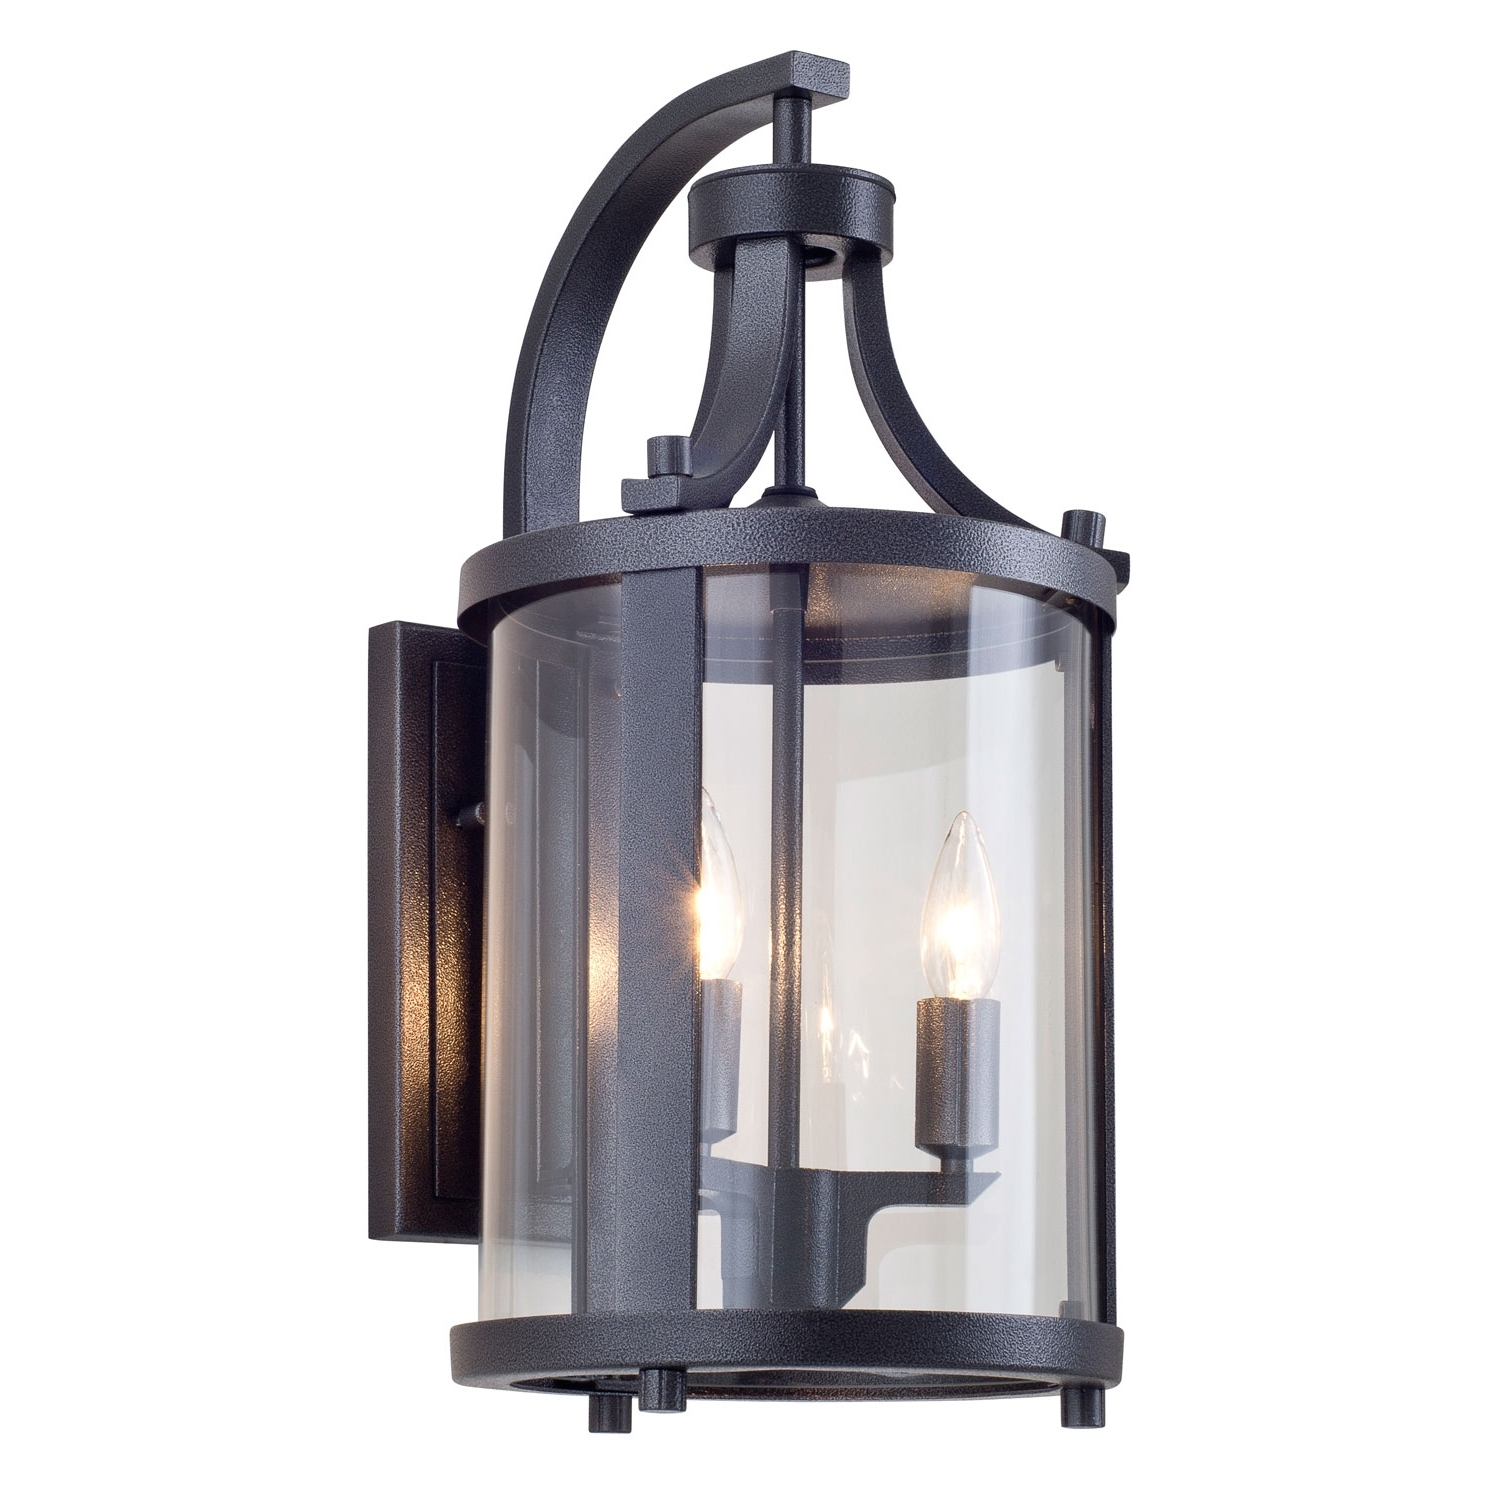 Most Recent Light : Exterior Wall Mount Light Niagara Outdoor Hammered Black Two Within Dusk To Dawn Outdoor Wall Mounted Lighting (View 11 of 20)